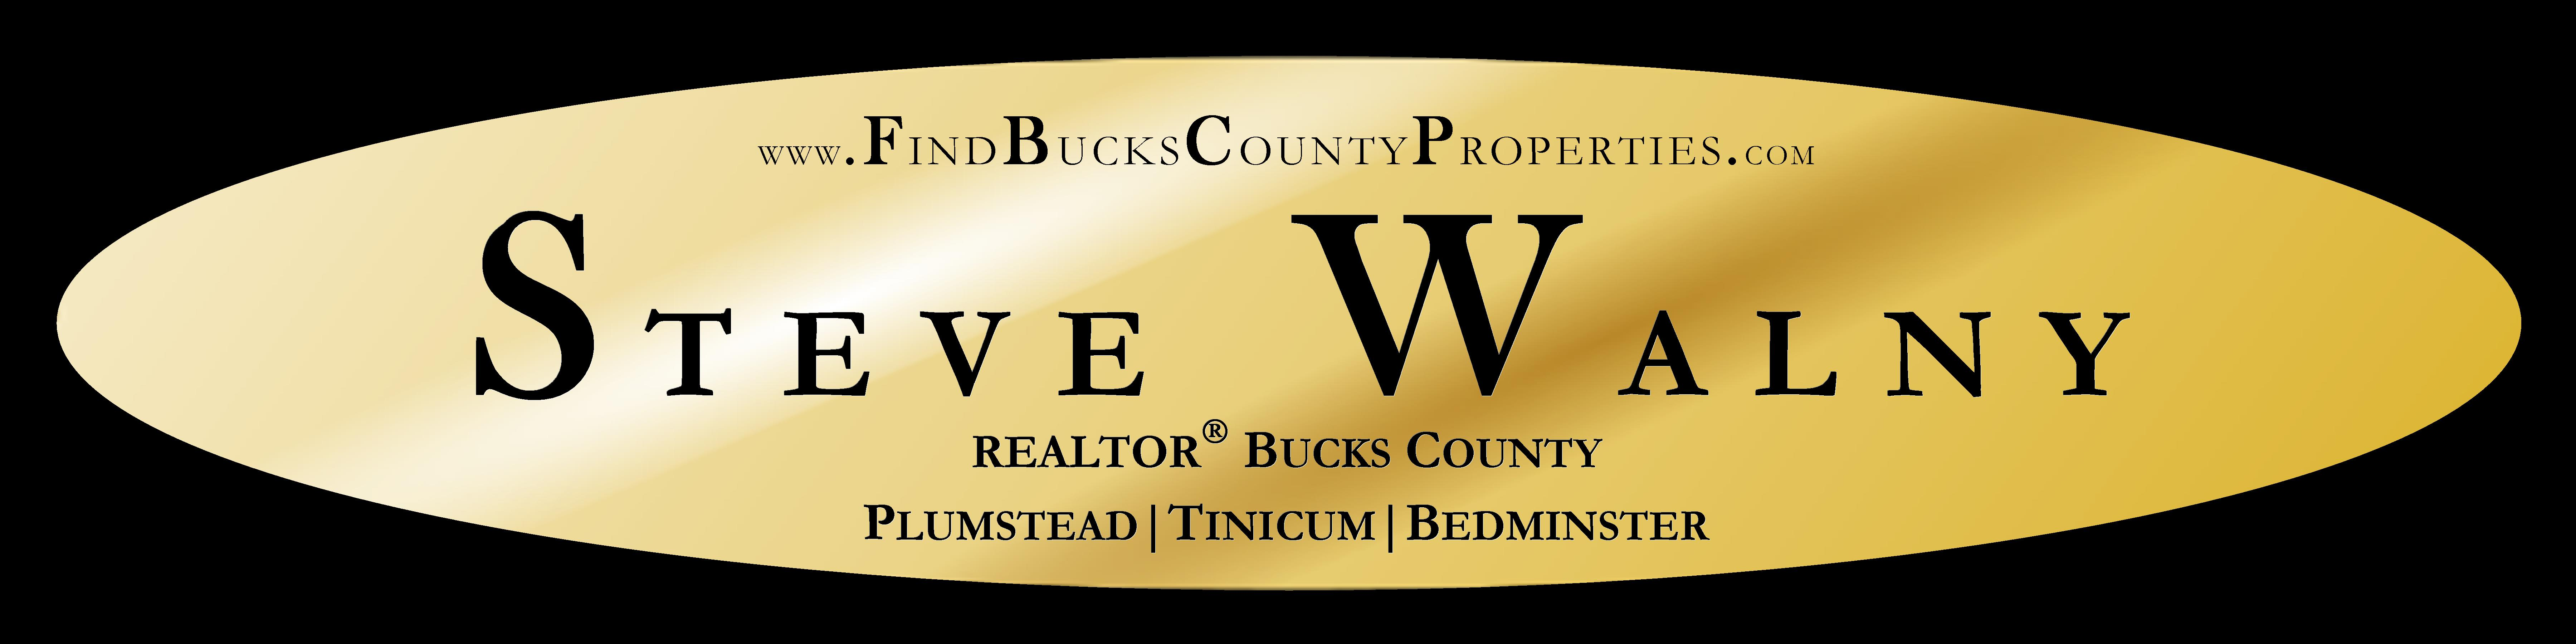 Steve Walny | #SteveWalny #BedminsterRealtor #BucksCountyRealtors, #BedminsterPA, Bedminster PA Homes For Sale,